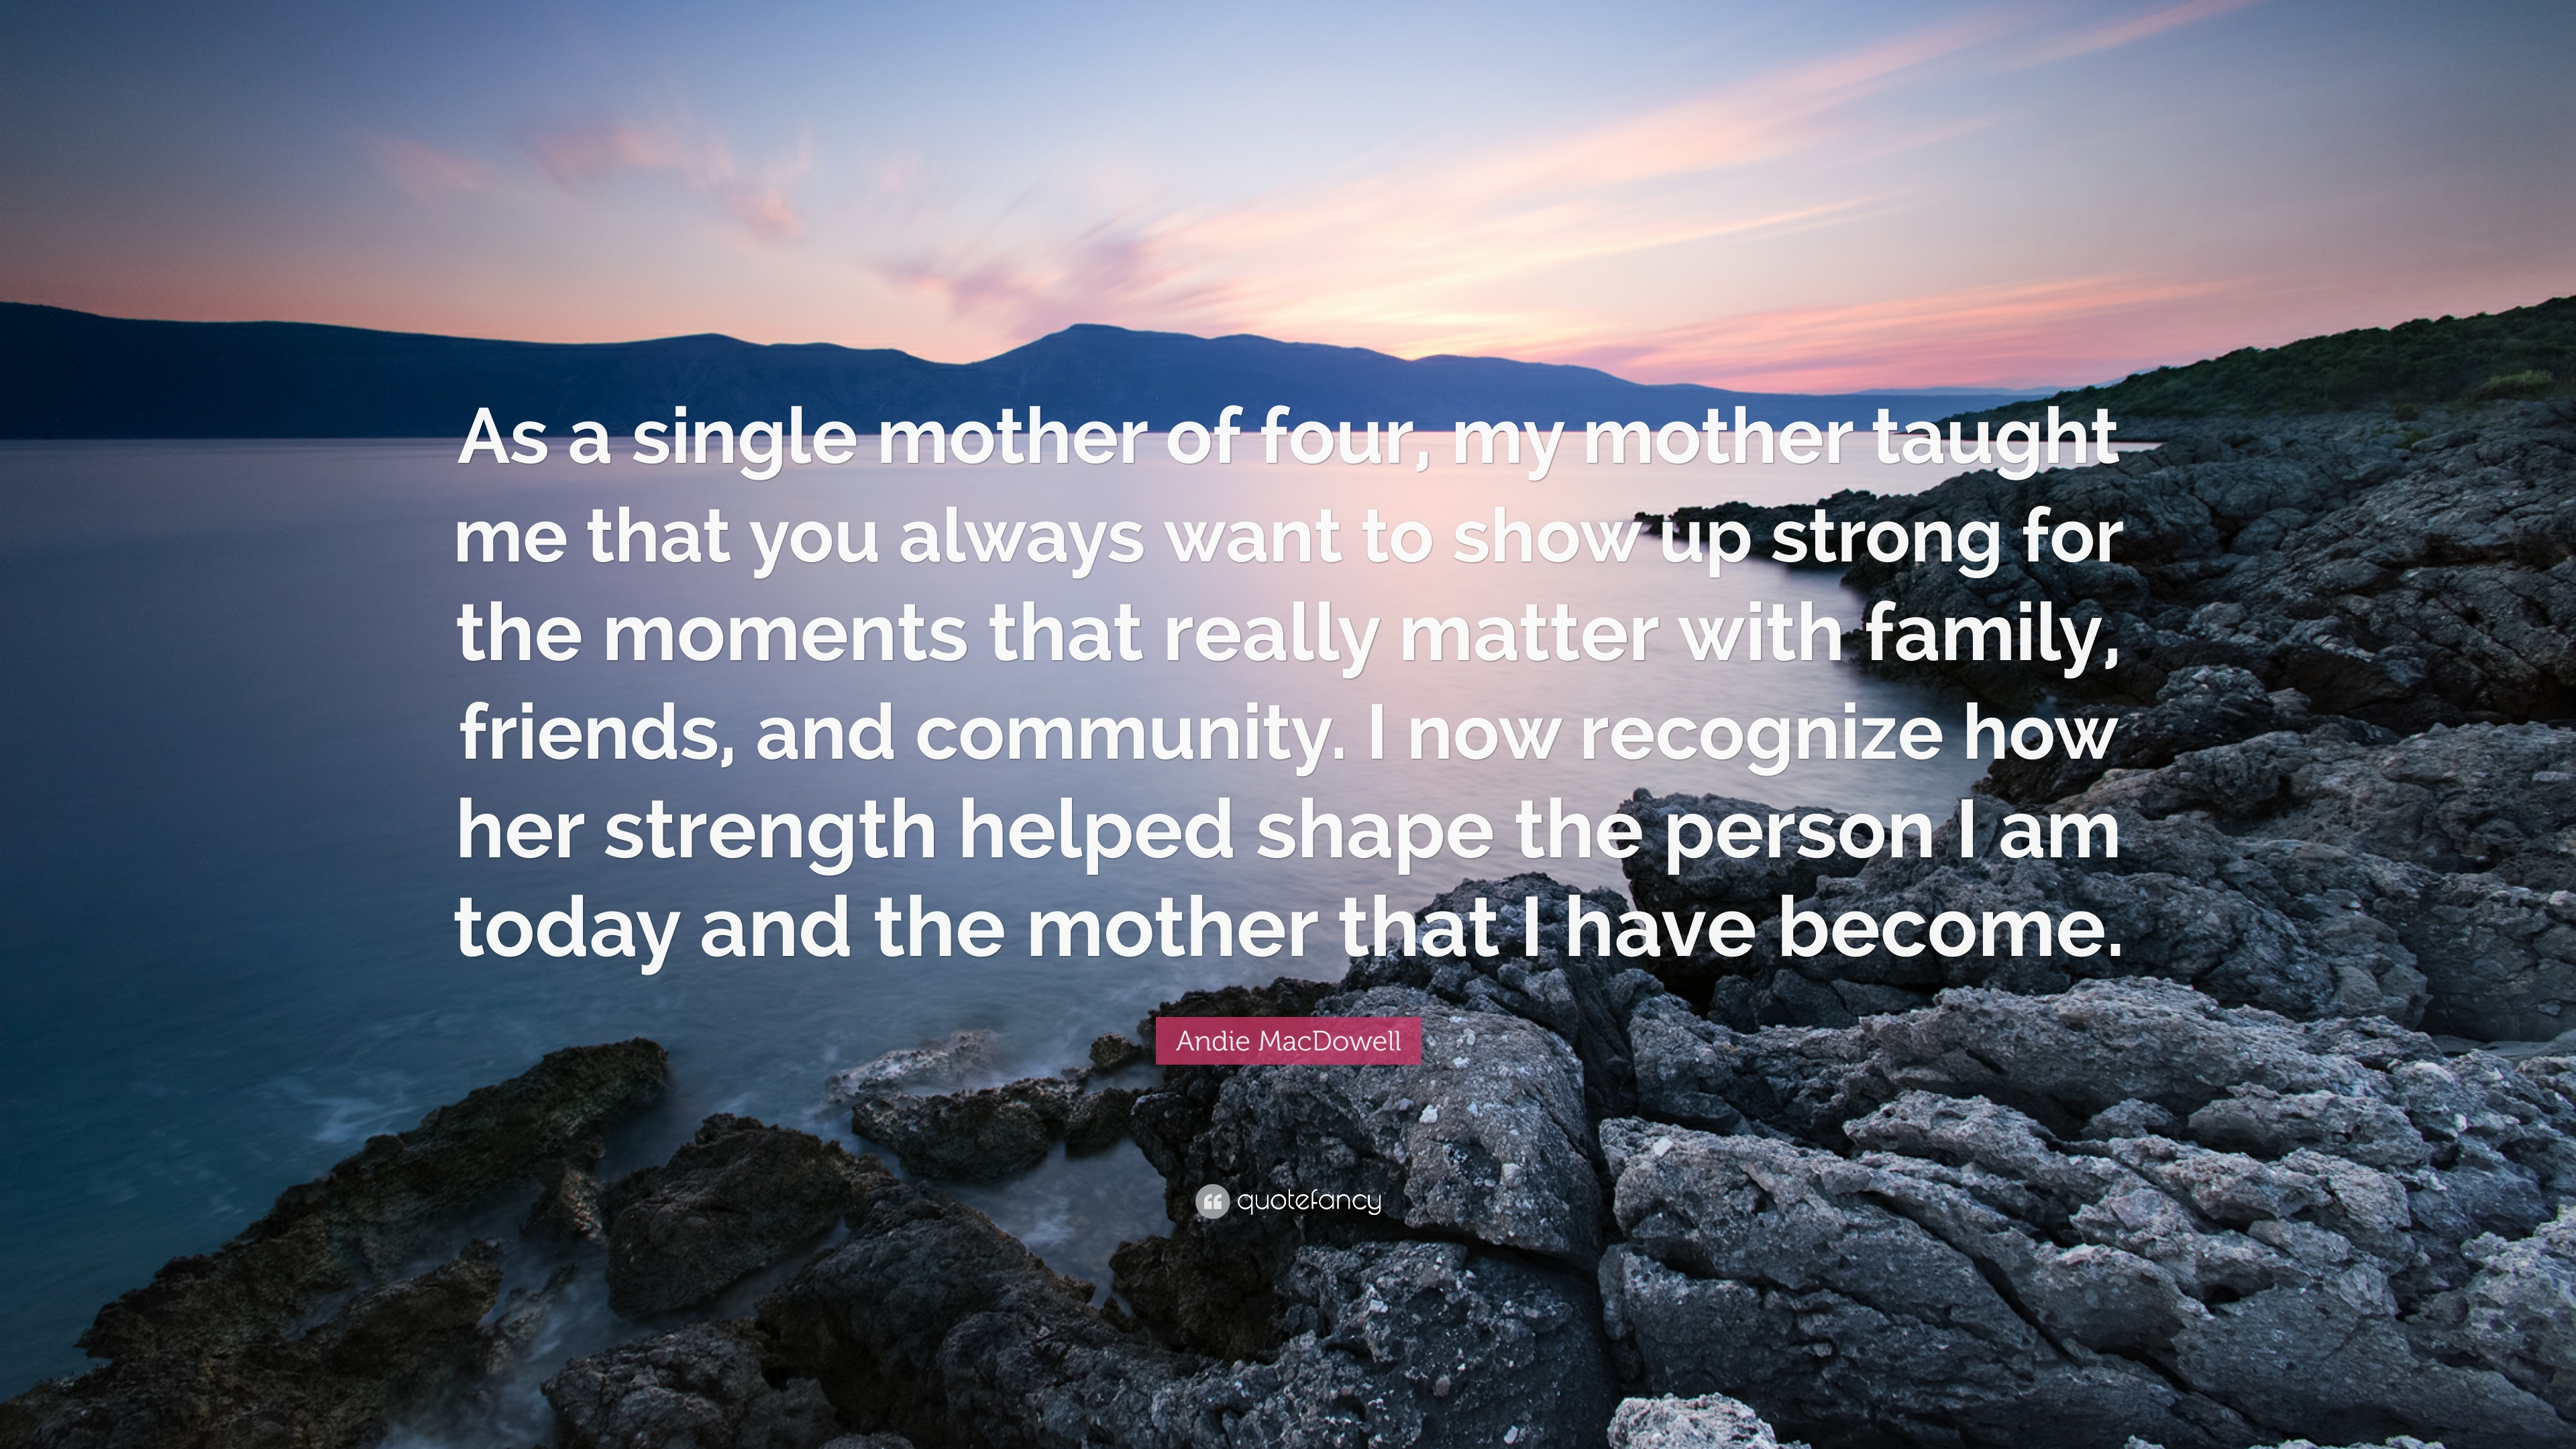 Andie Macdowell Quote As A Single Mother Of Four My Mother Taught